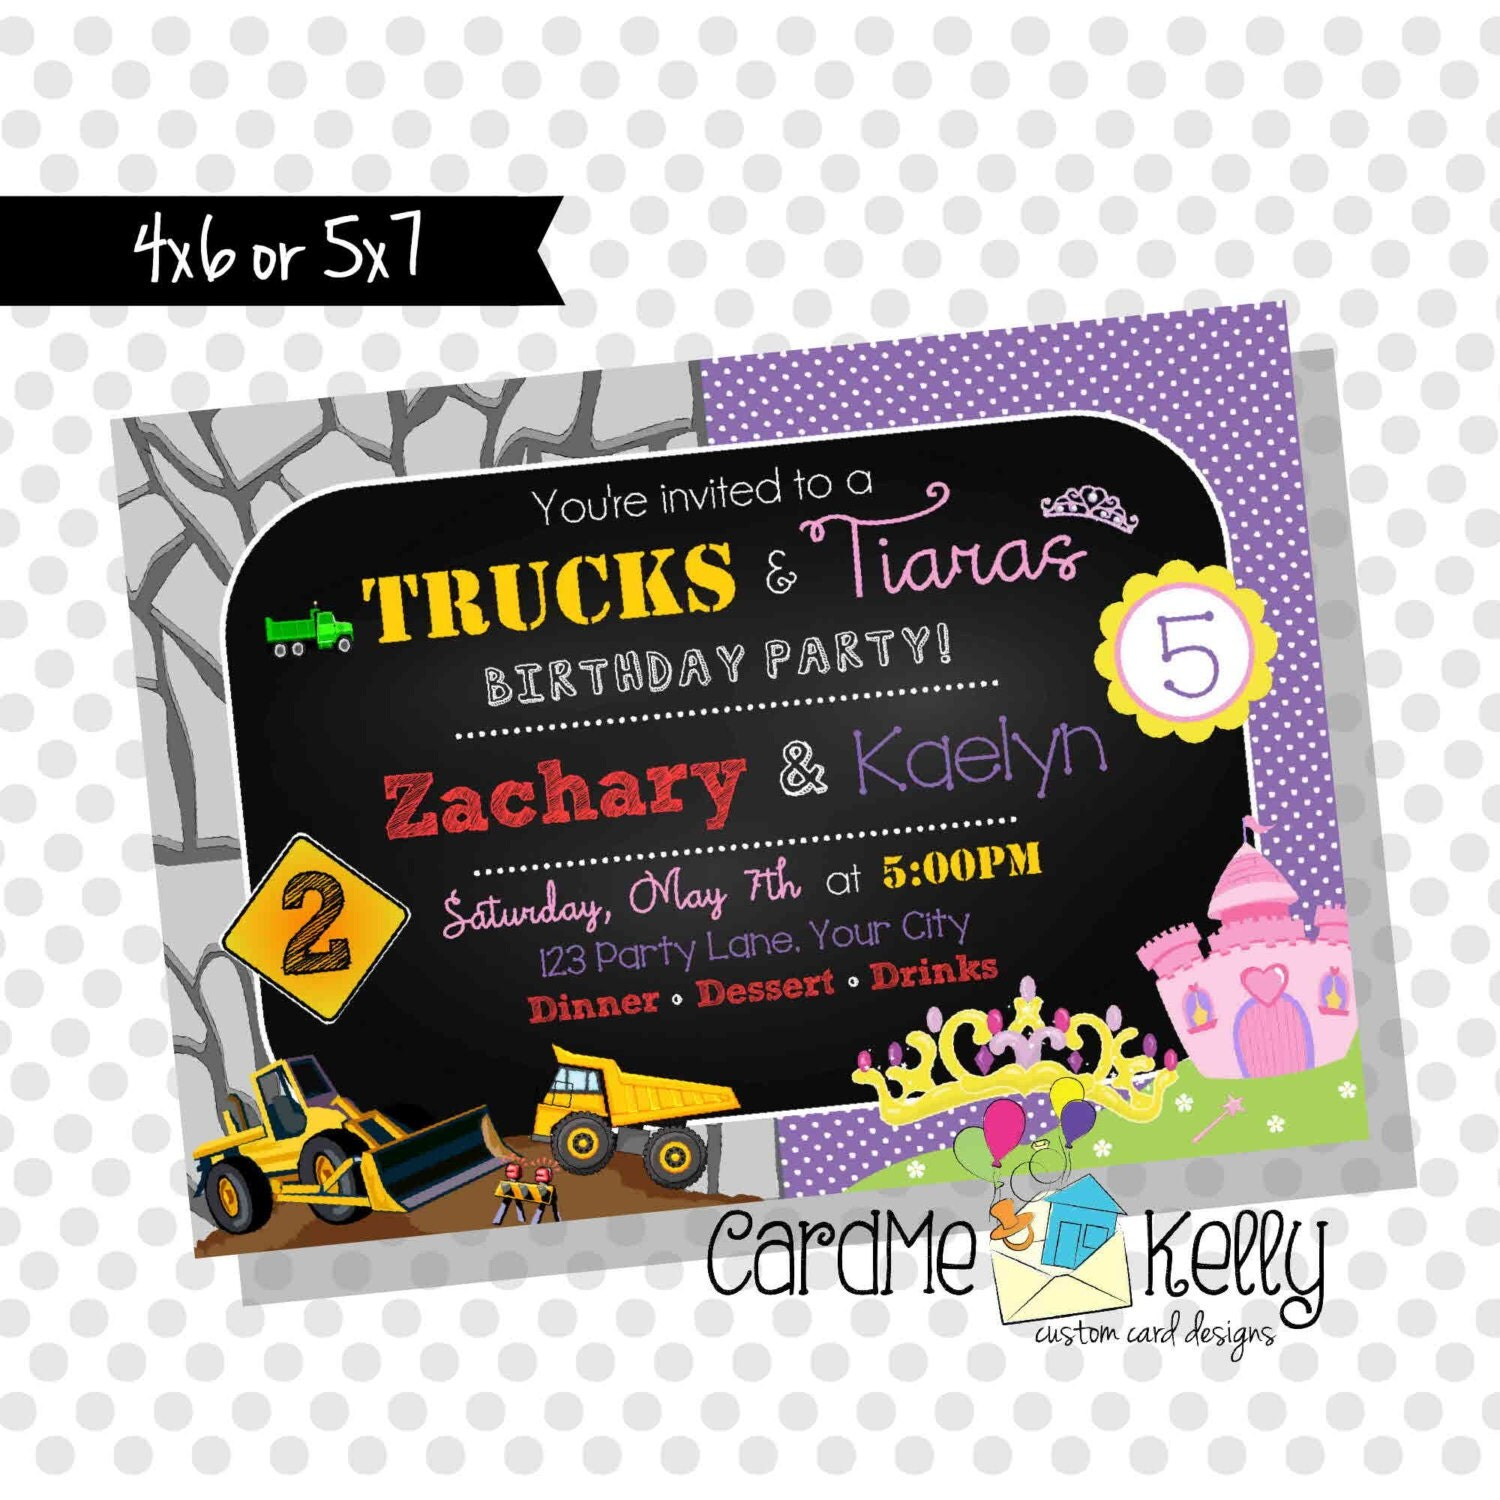 Printable Joint Birthday Party Invitations ~ Printable joint birthday party invitation trucks and tiaras